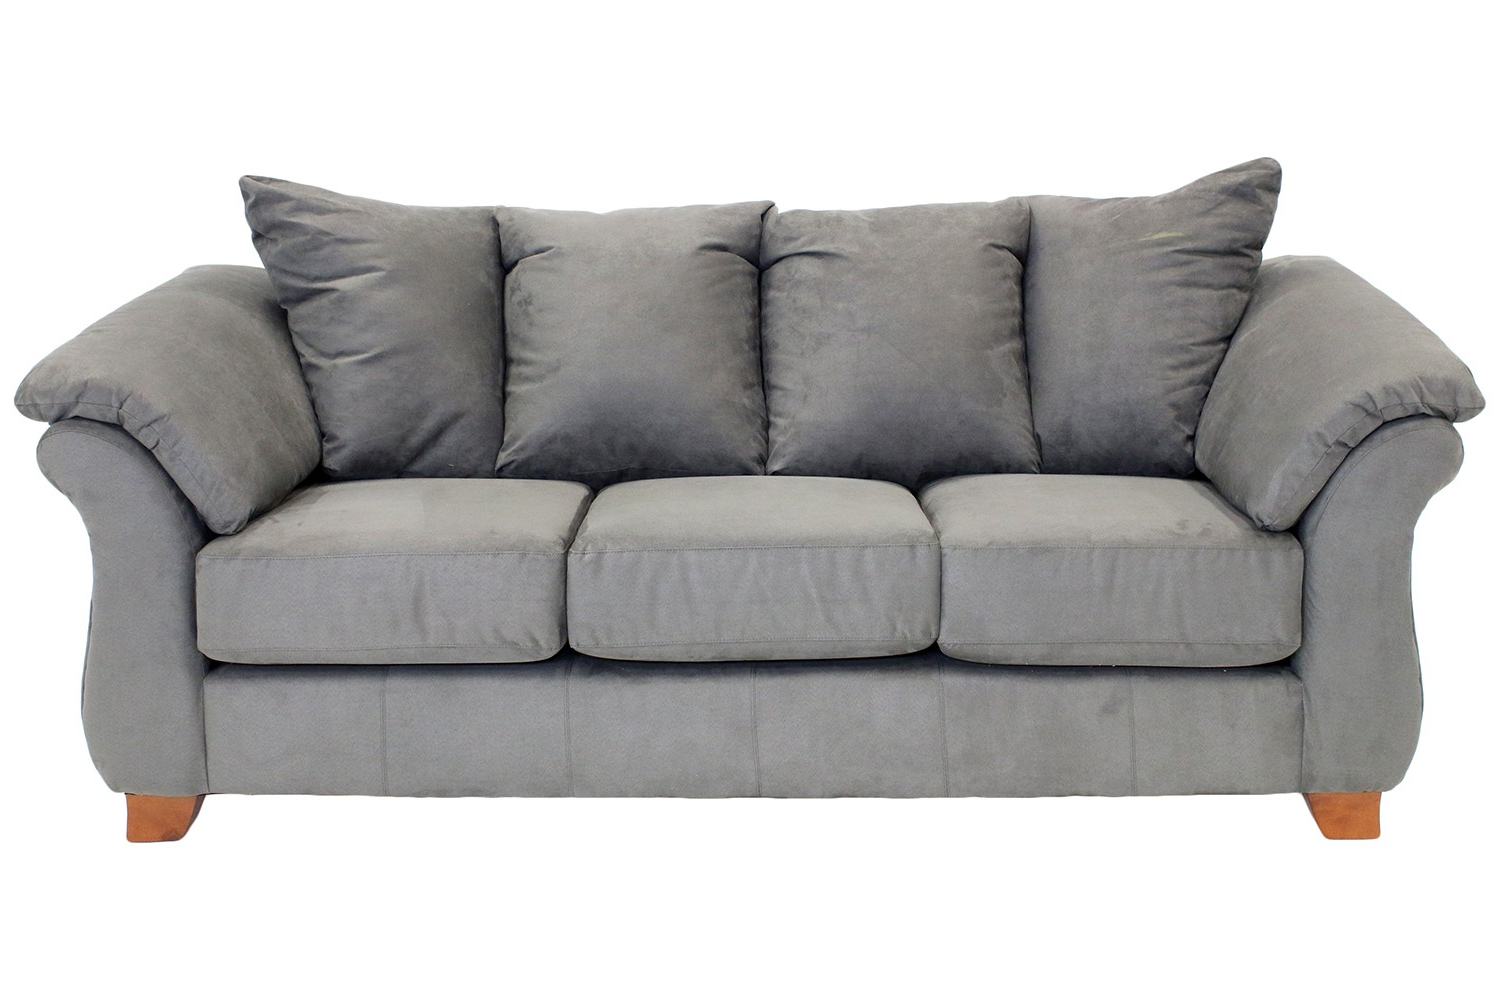 Widely Used Cosmos Grey 2 Piece Sectionals With Raf Chaise Inside Sofas & Couches (View 20 of 20)